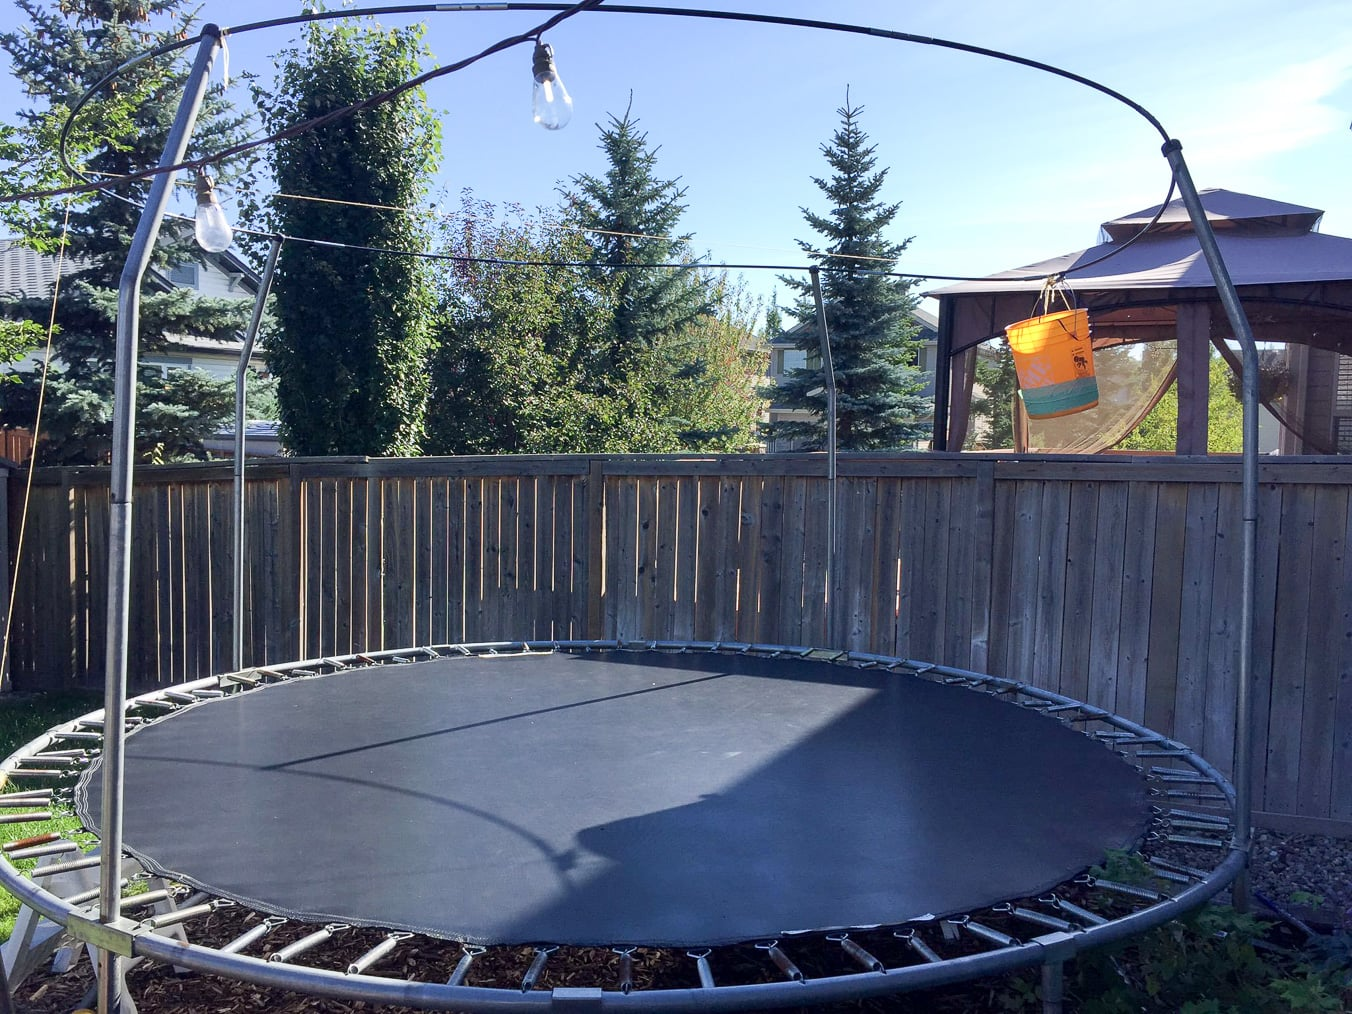 Surprising our kids with a springfree trampoline a for Springfree trampoline